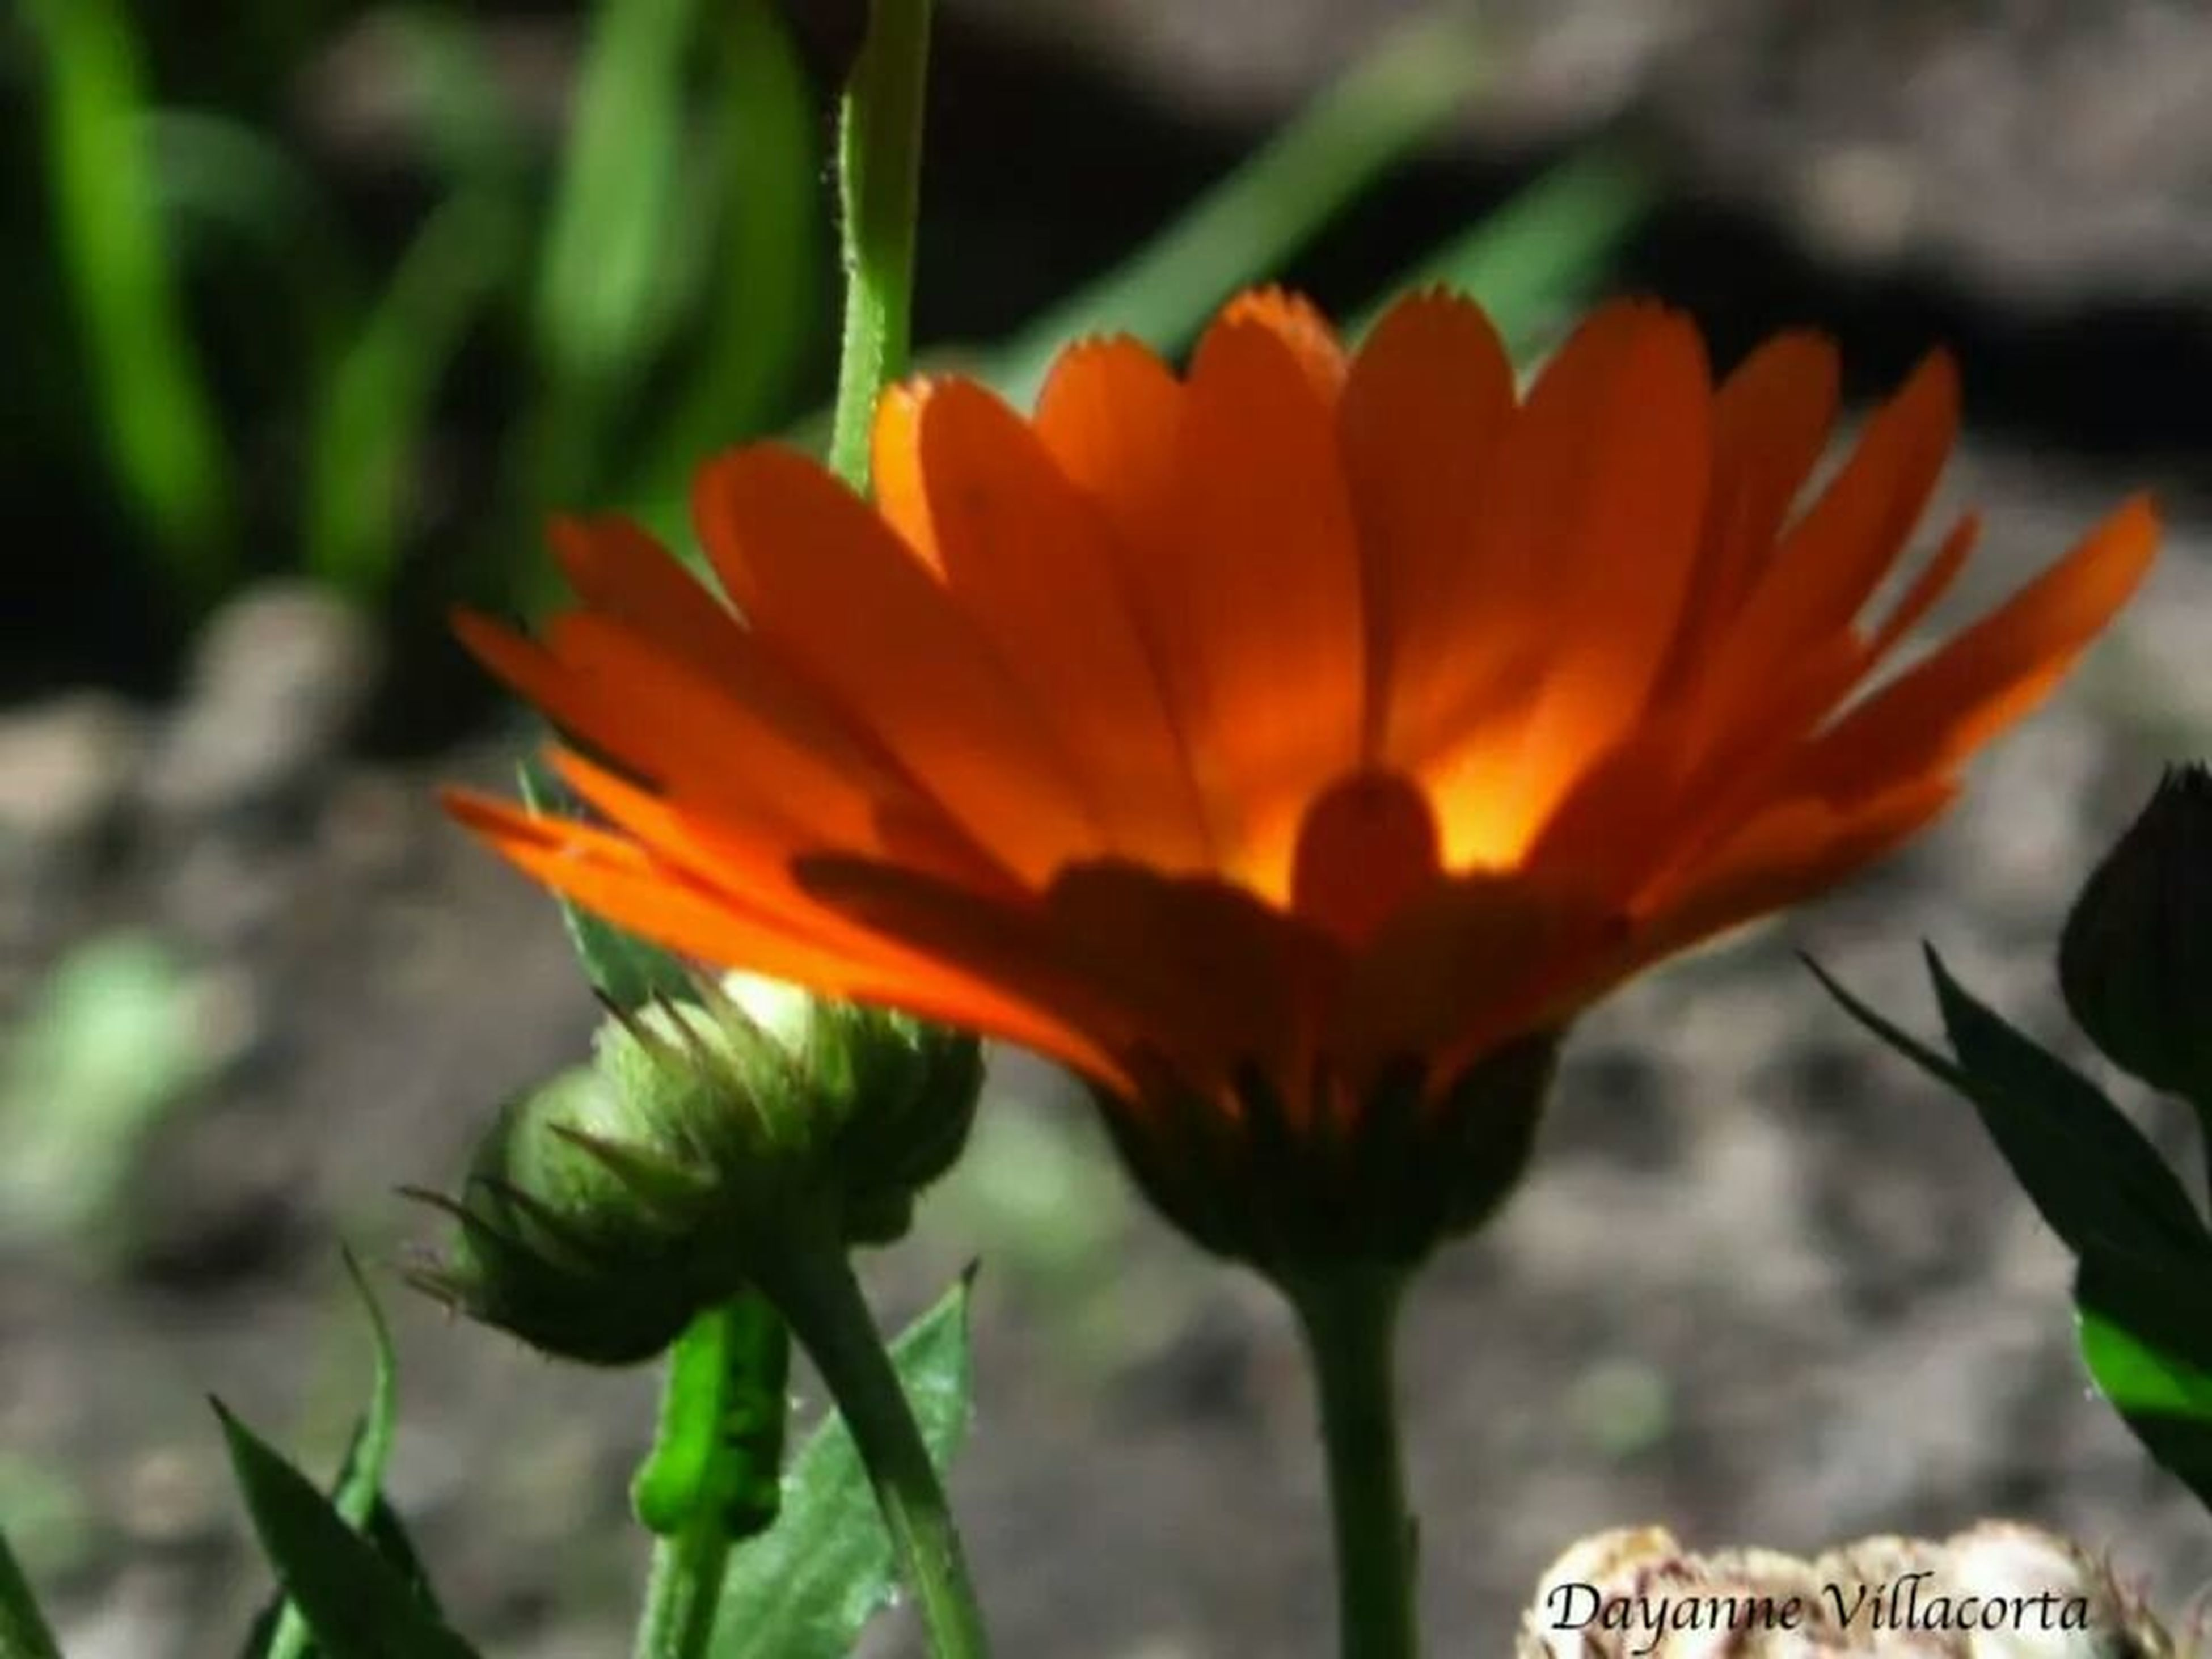 flower, petal, freshness, flower head, growth, fragility, focus on foreground, close-up, plant, orange color, beauty in nature, blooming, nature, stem, leaf, in bloom, selective focus, park - man made space, bud, outdoors